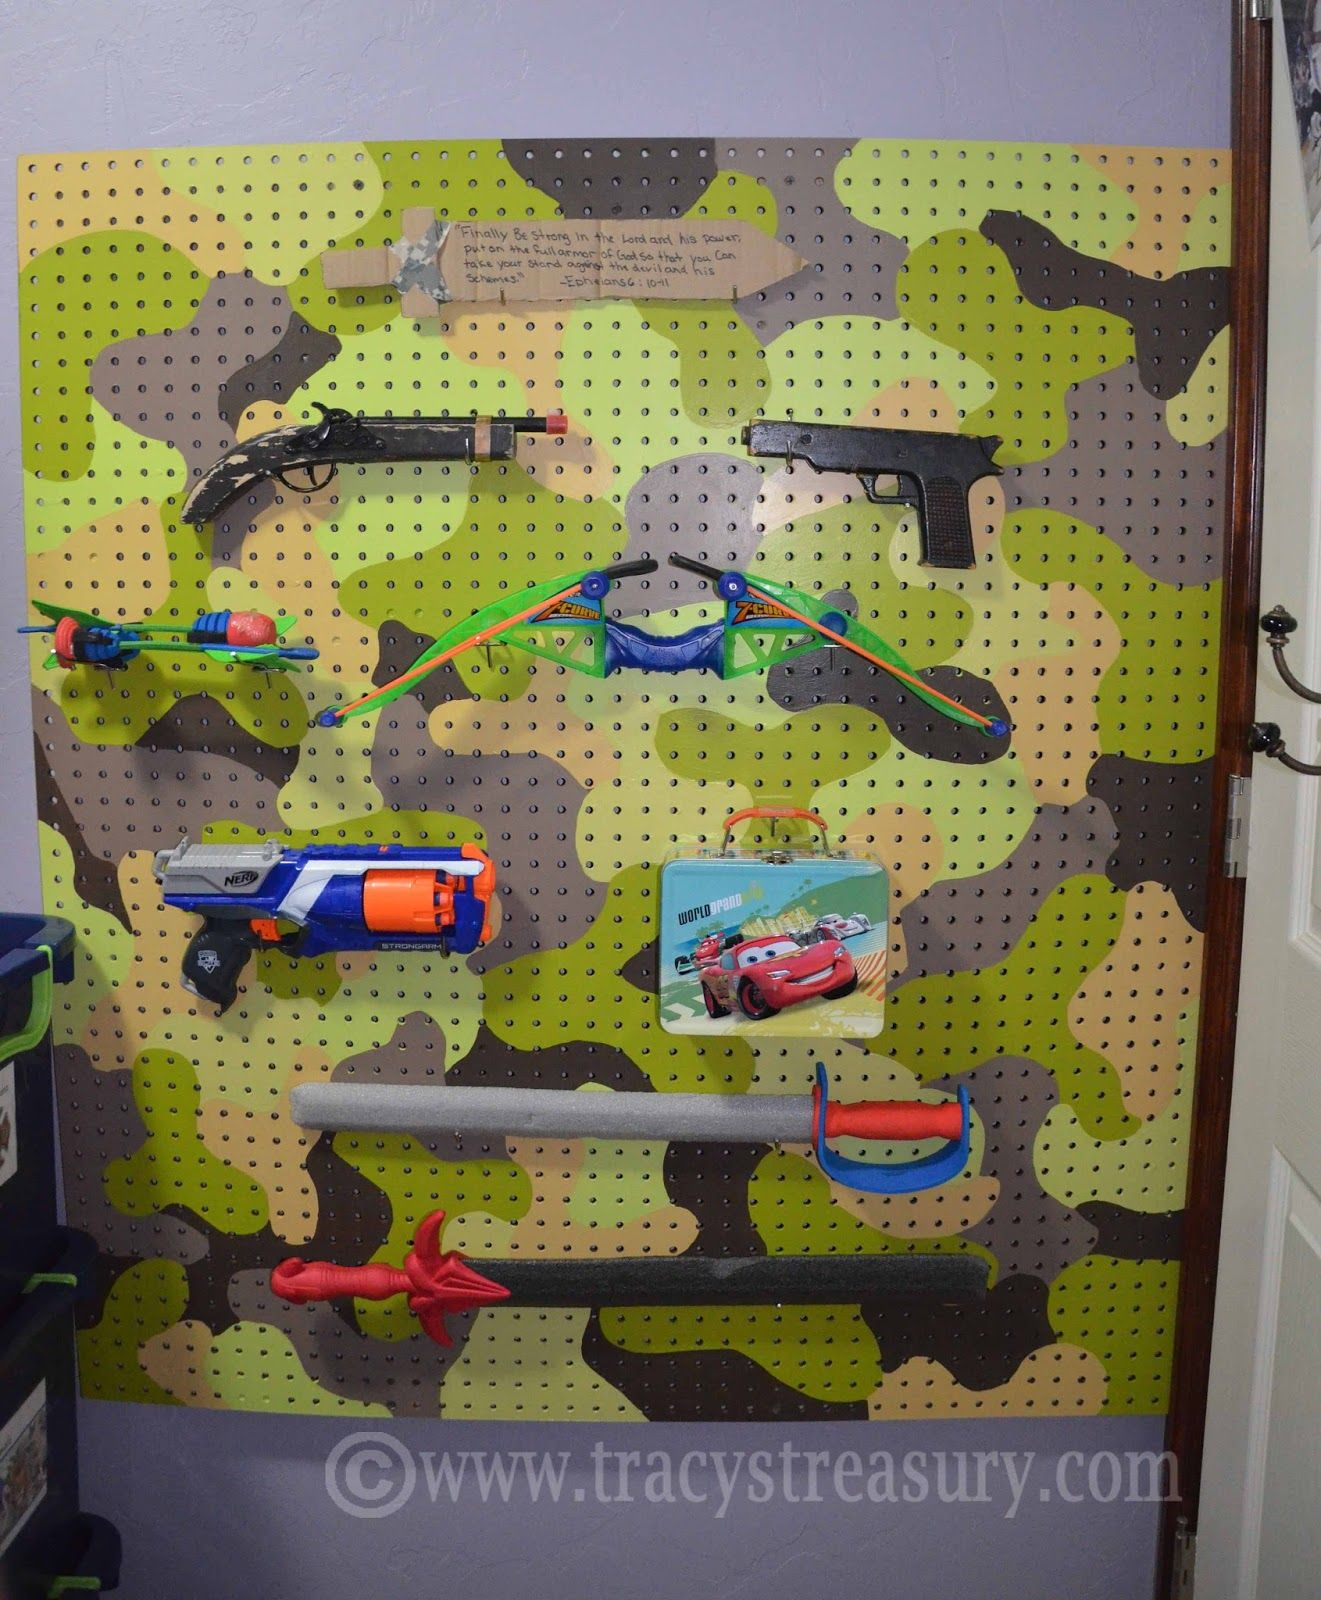 For any moms of little boys with nerf guns and swords etc